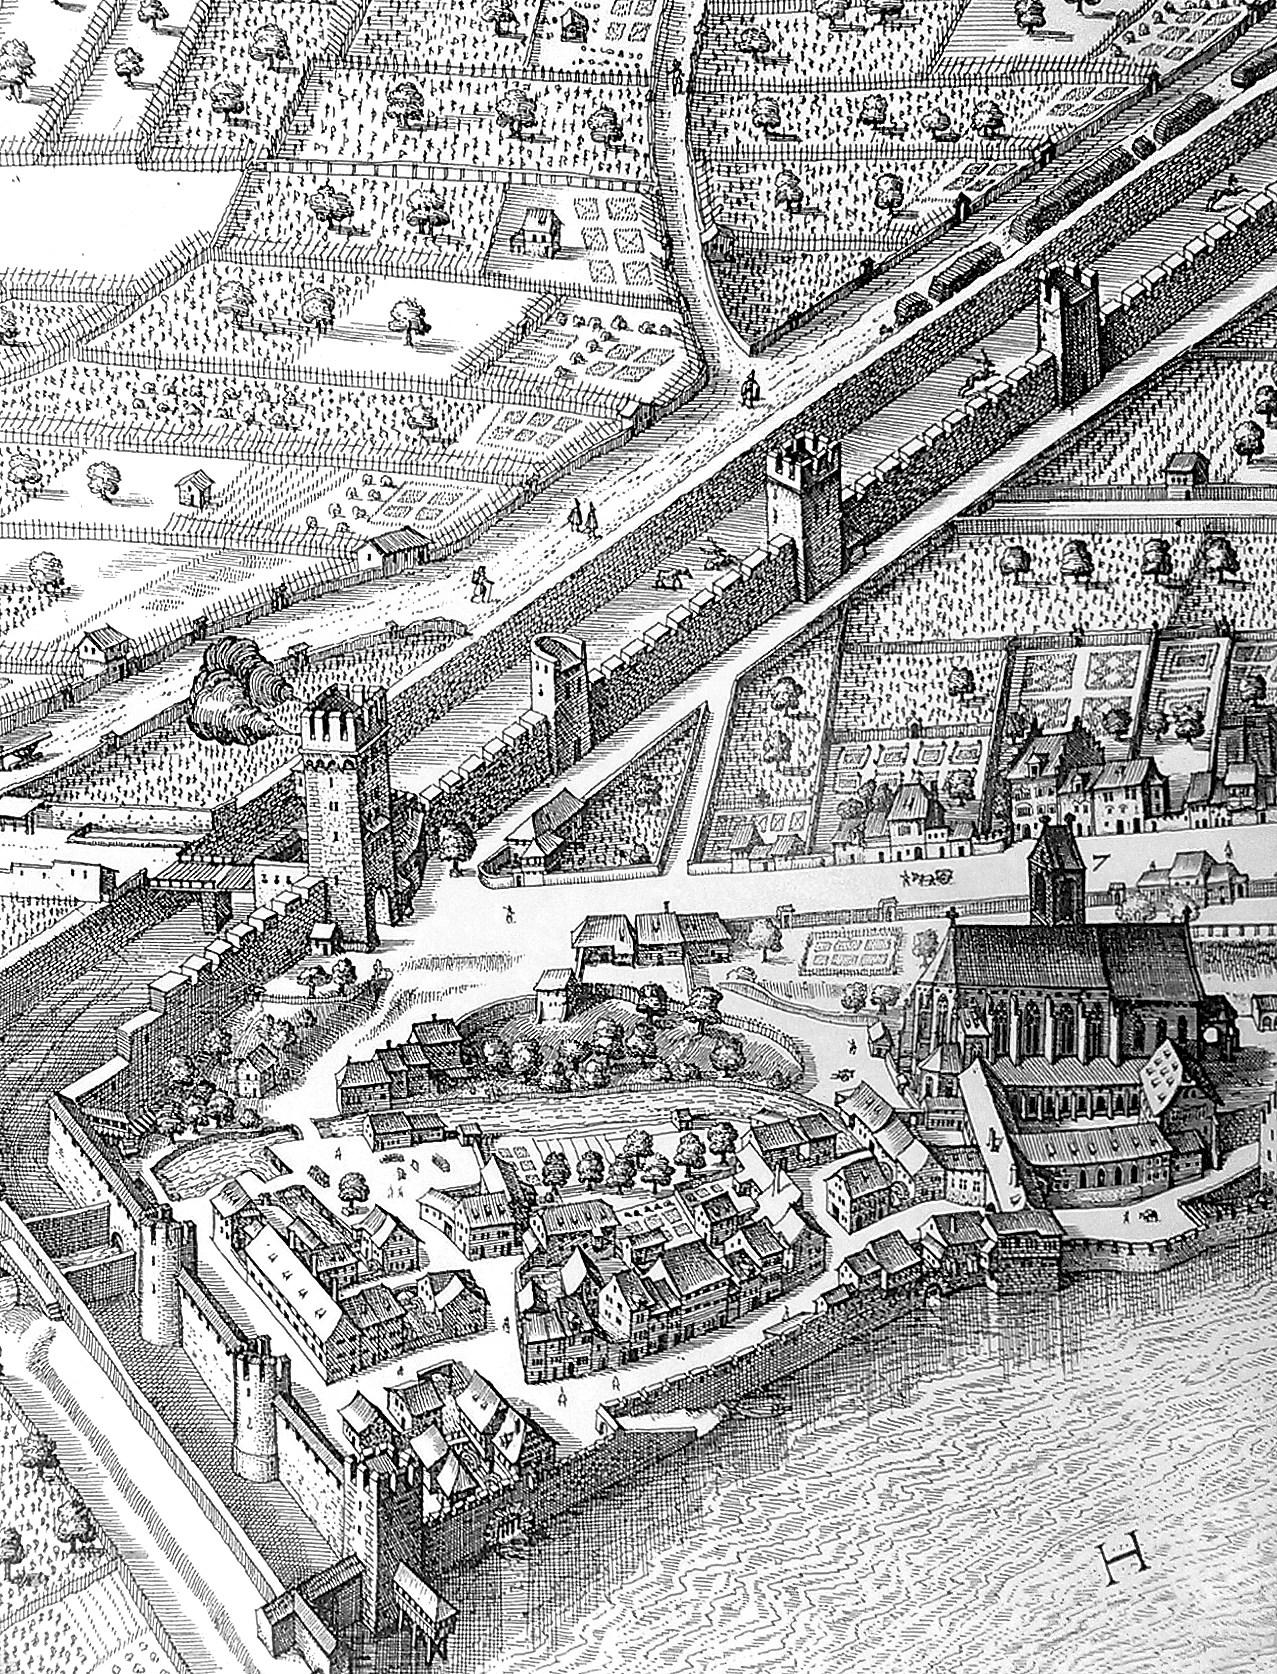 The area of St Albans, clearly showing the nine water wheels associated with paper making & book printing, knife, sword & armour making as well as milning. By Matthäus Merian, 1615.